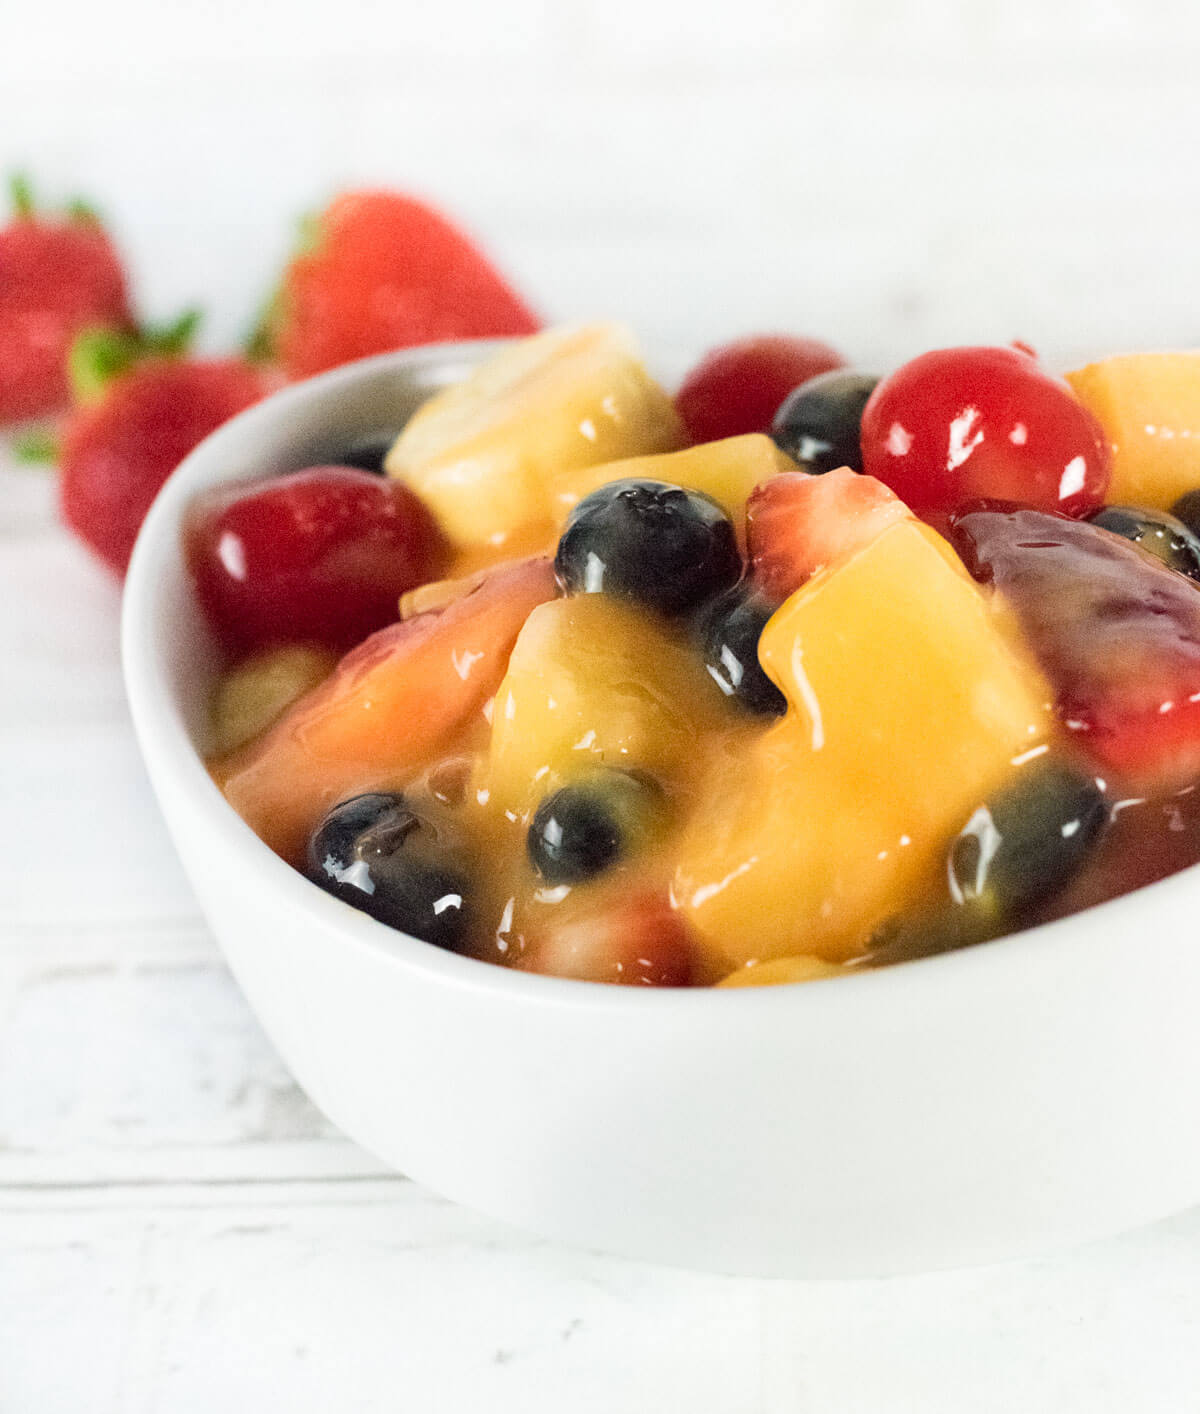 Fruit Salad recipe with Pudding